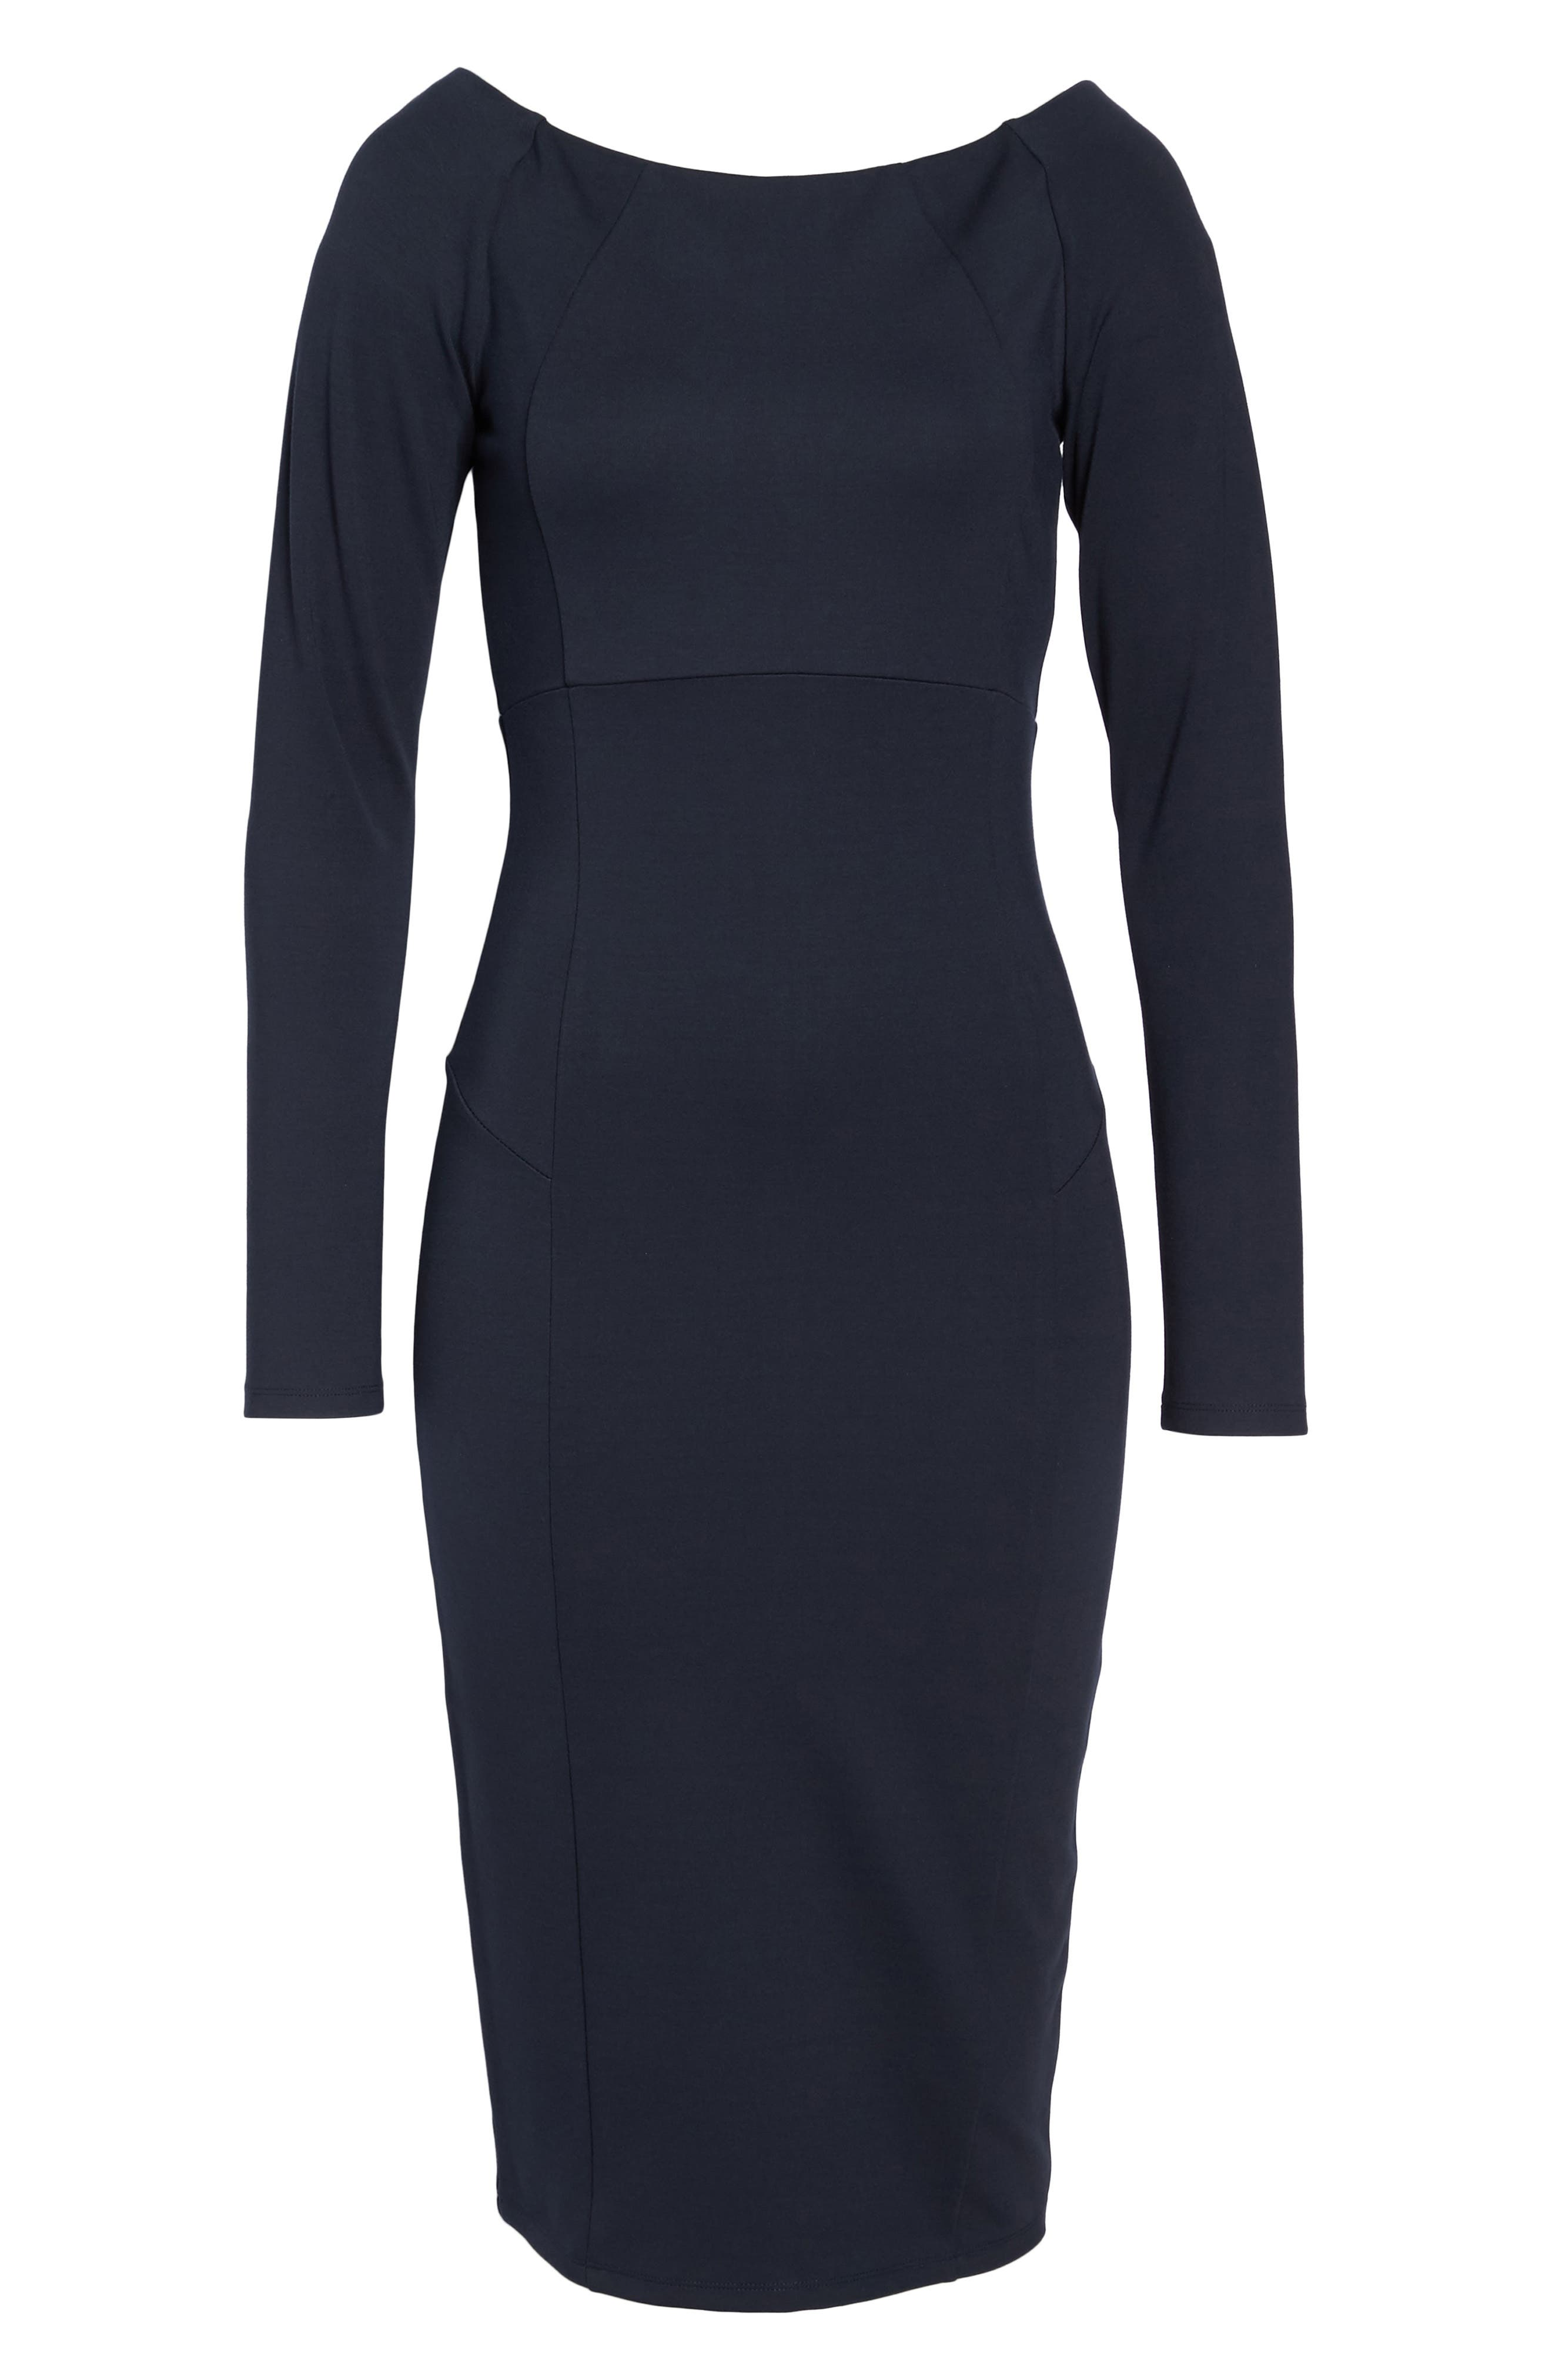 Maile Sheath Dress,                             Alternate thumbnail 6, color,                             Navy